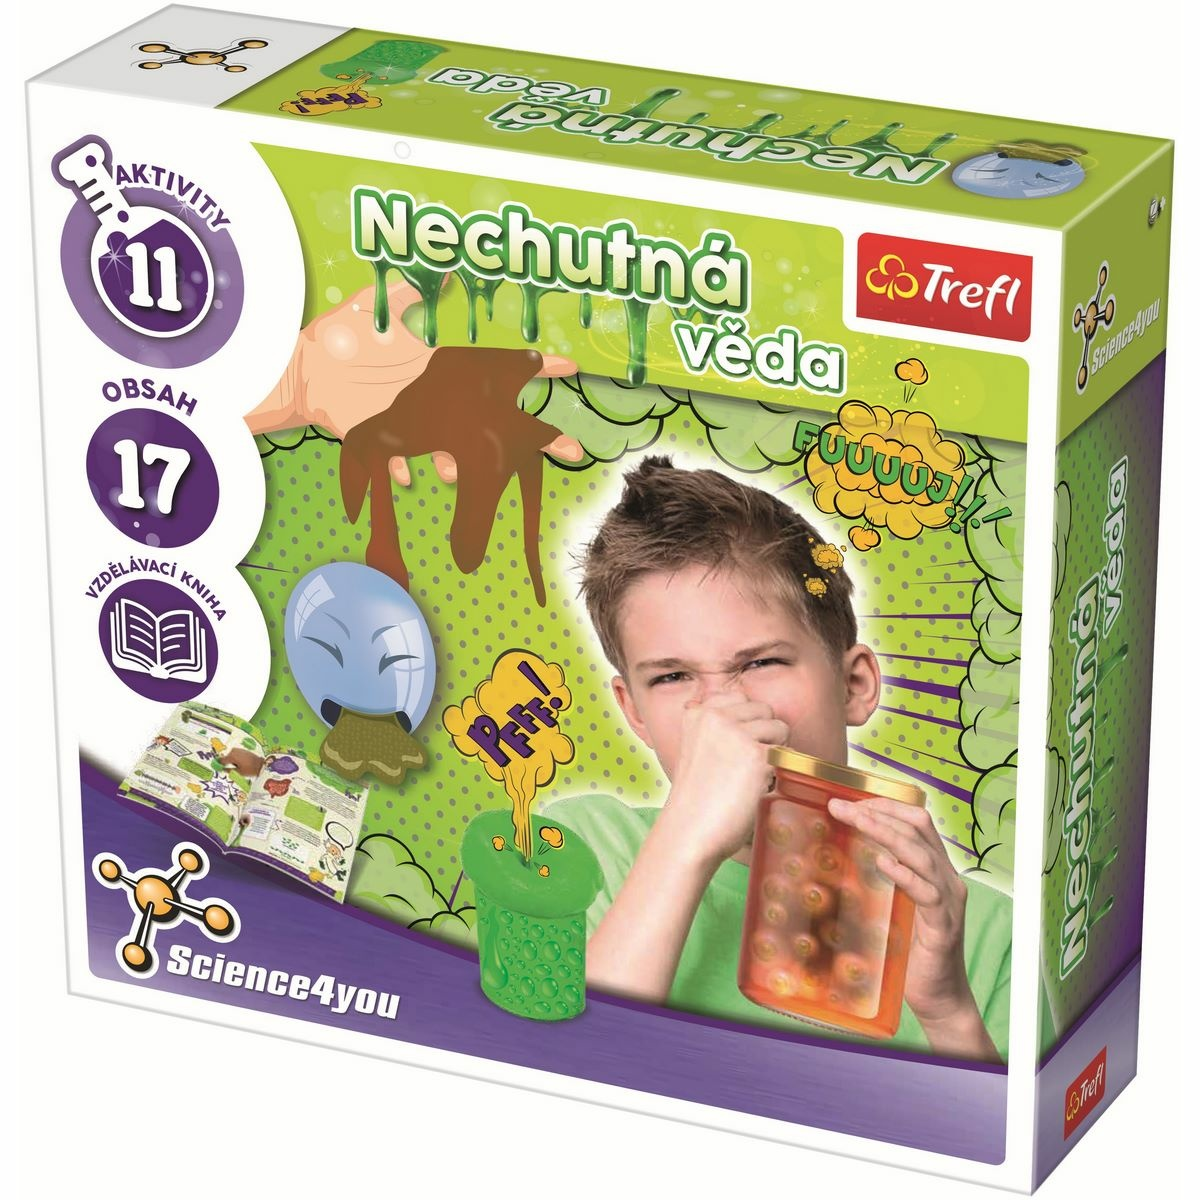 Trefl Science4you: Nechutná věda